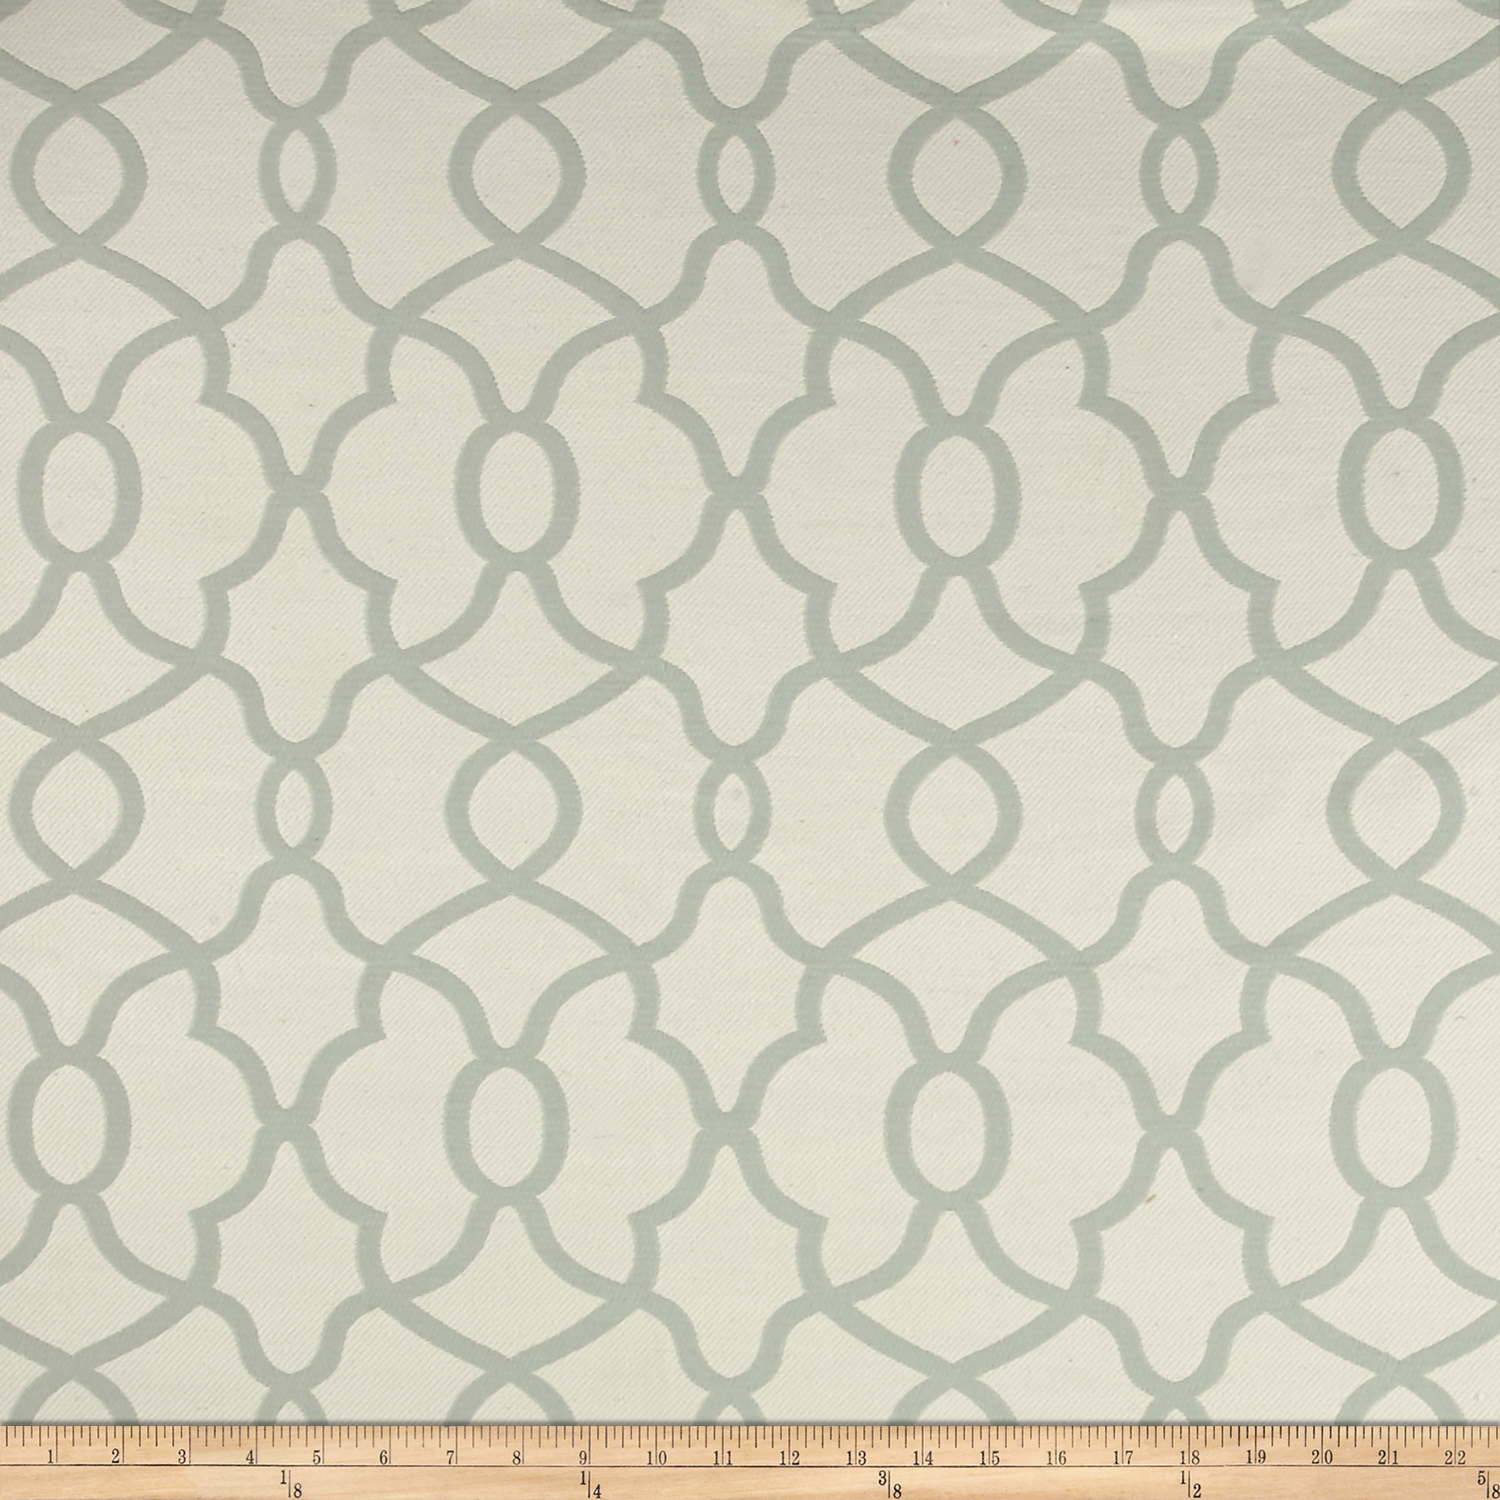 Kelly Ripa Home Clearly Cool Spa Fabric by Waverly in USA